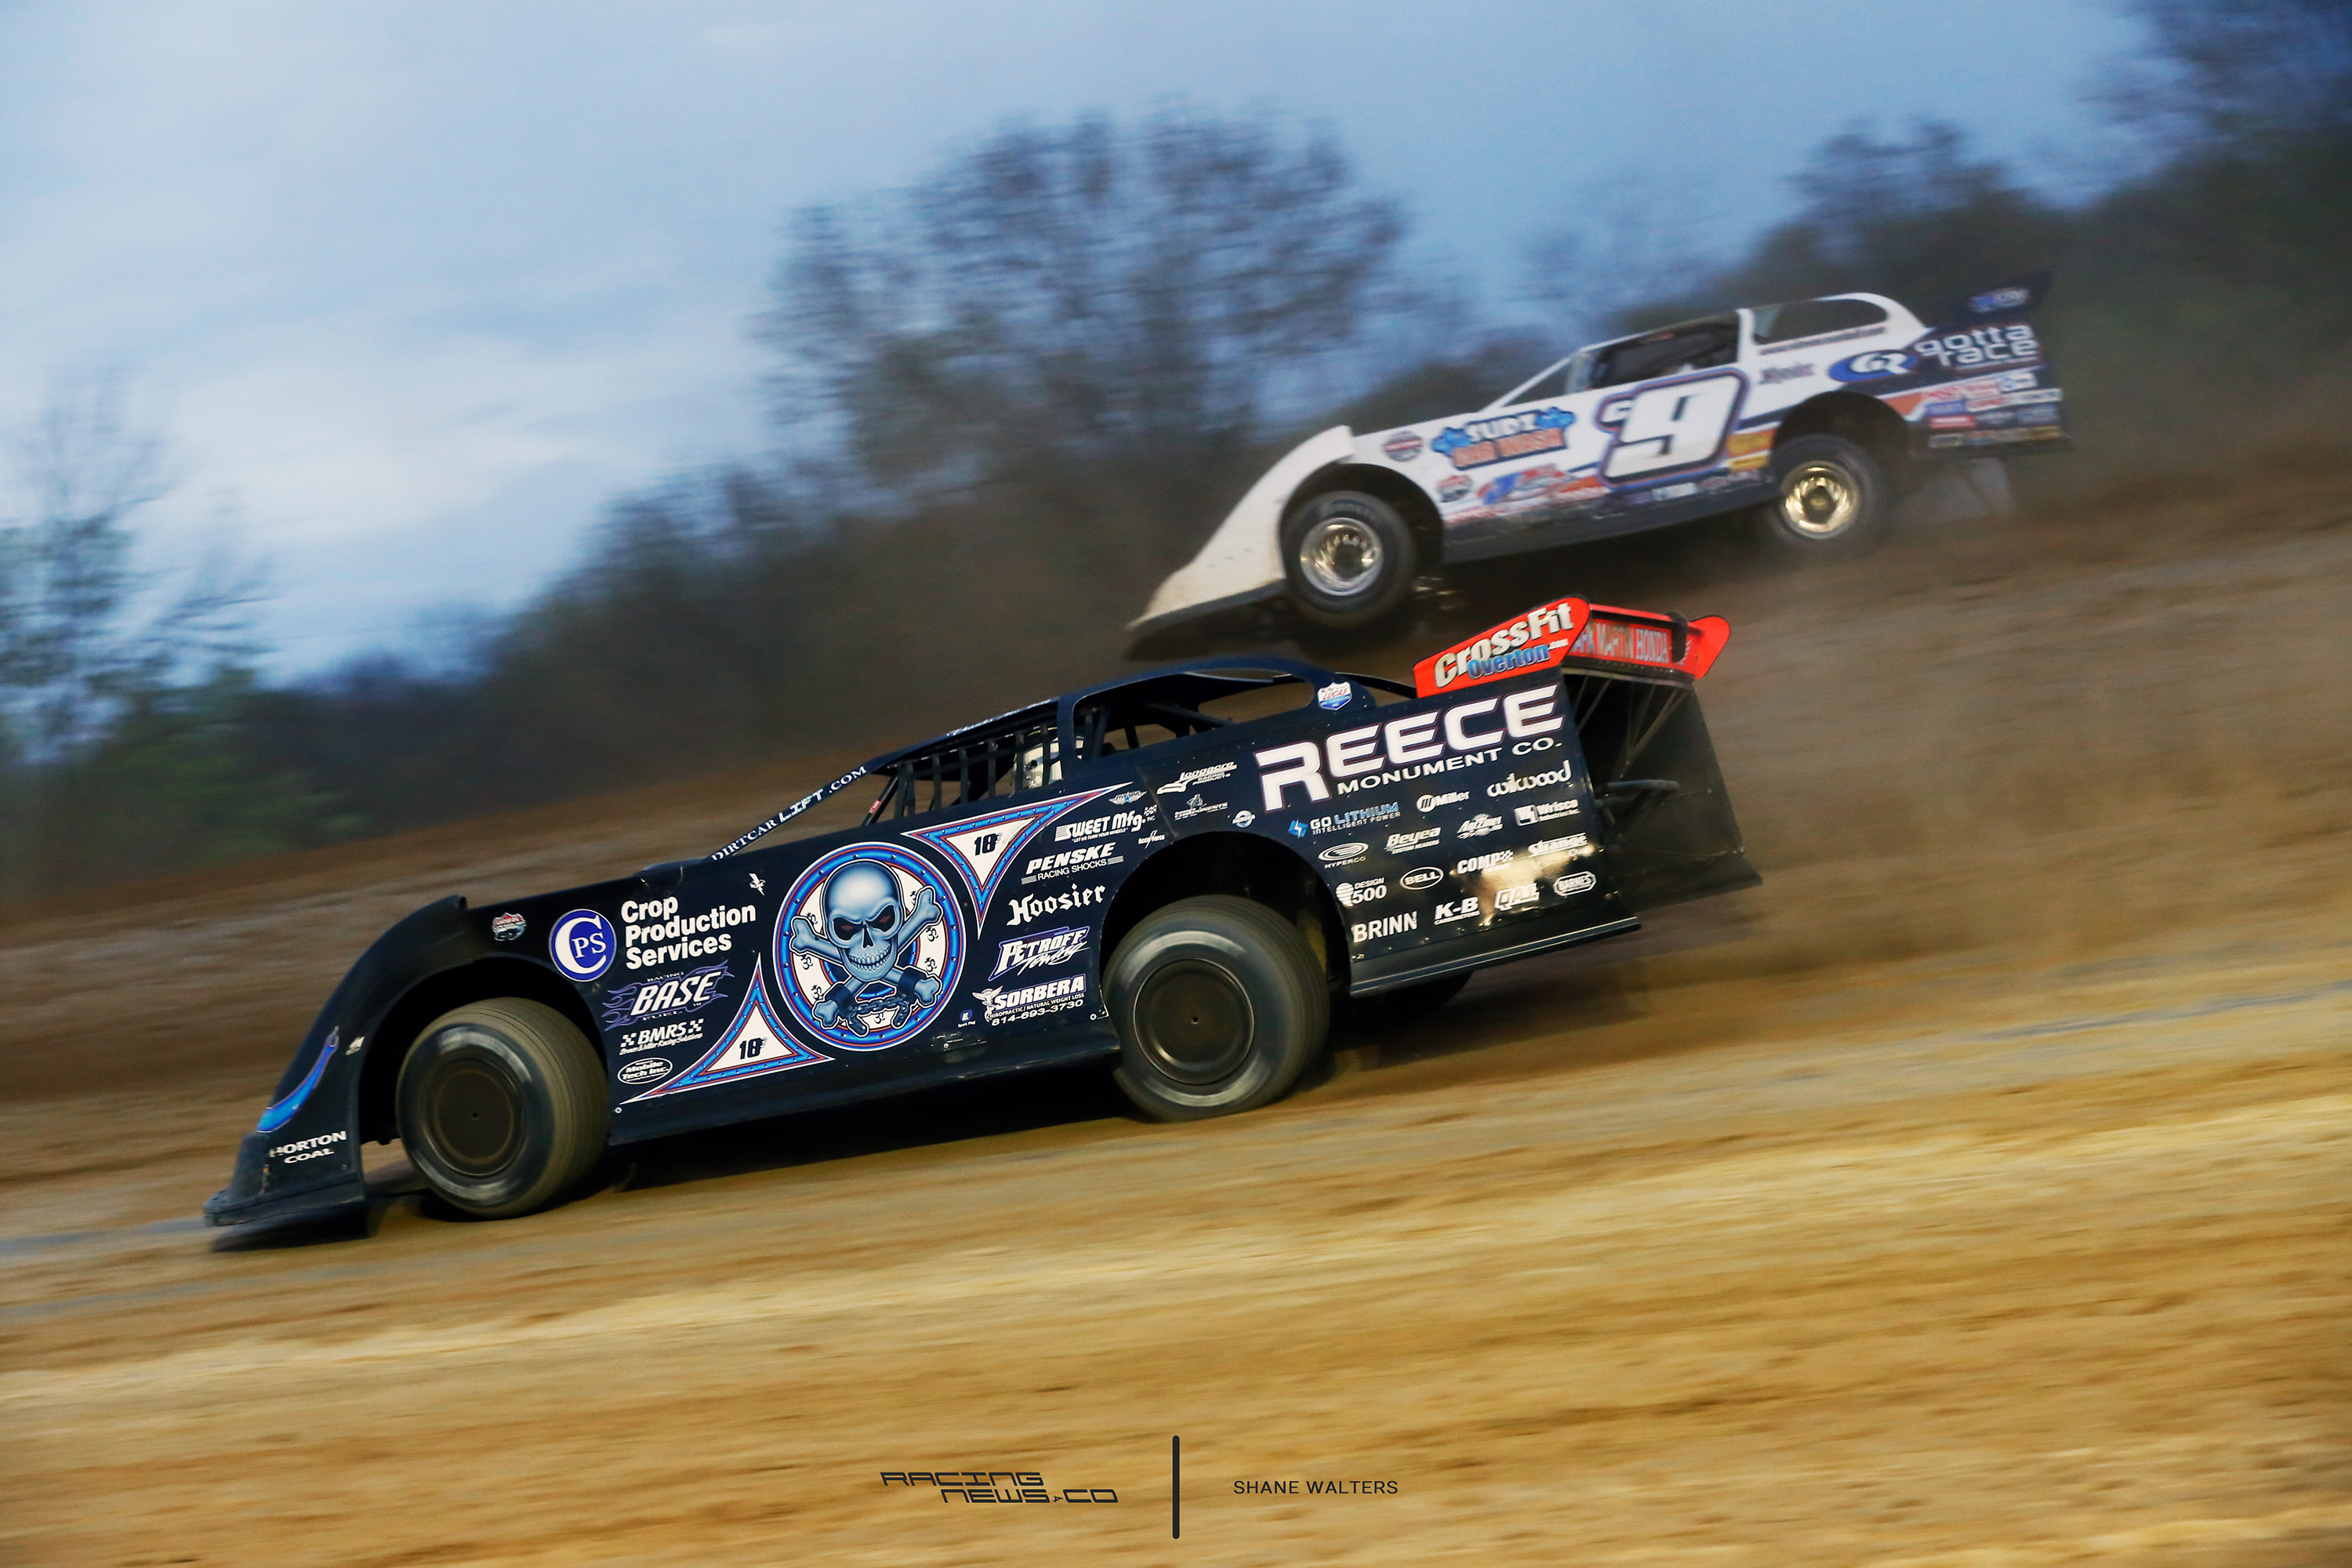 Scott Bloomquist and Steve Casebolt at Atomic Speedway for the LOLMDS event